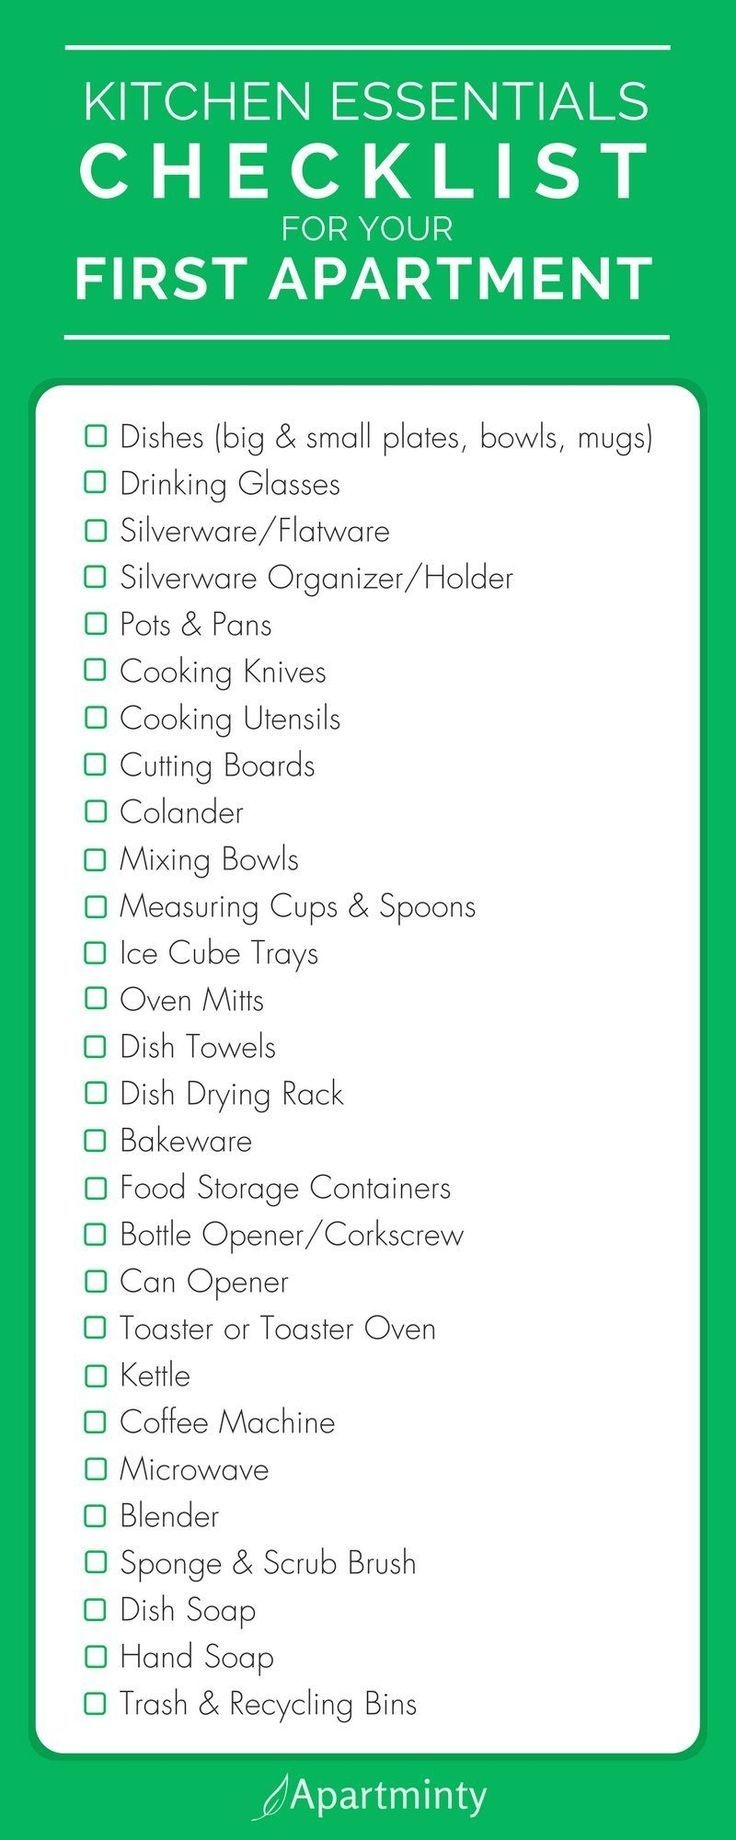 The Essential Items To Put On Your First Apartment Kitchen Checklist | What You #design #designer #designs #designlife #gardeningtips #kitchendecor #decorationideas #livingroomdecor #designlogo #designgrafico #designspiration #braidedhairstyles #crochethairstyles #garden_styles #gardenwedding #firstapartment